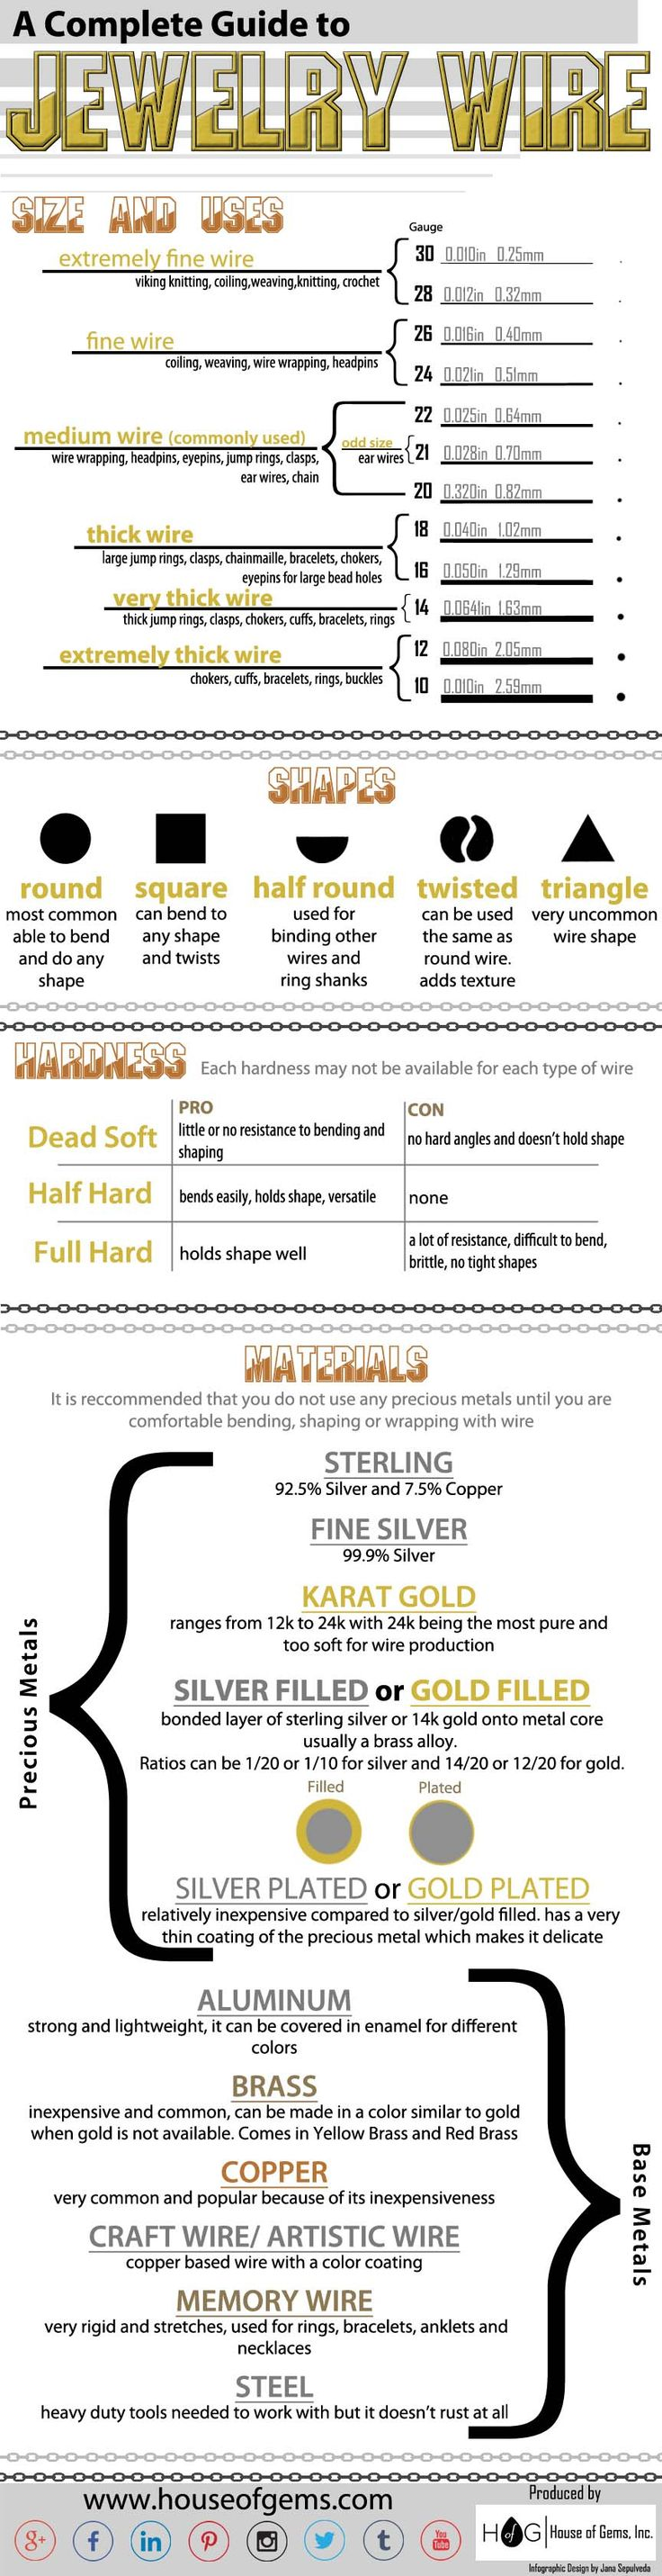 Complete Guide to Jewelry Wire #Infographic #diy_jewelry #wire